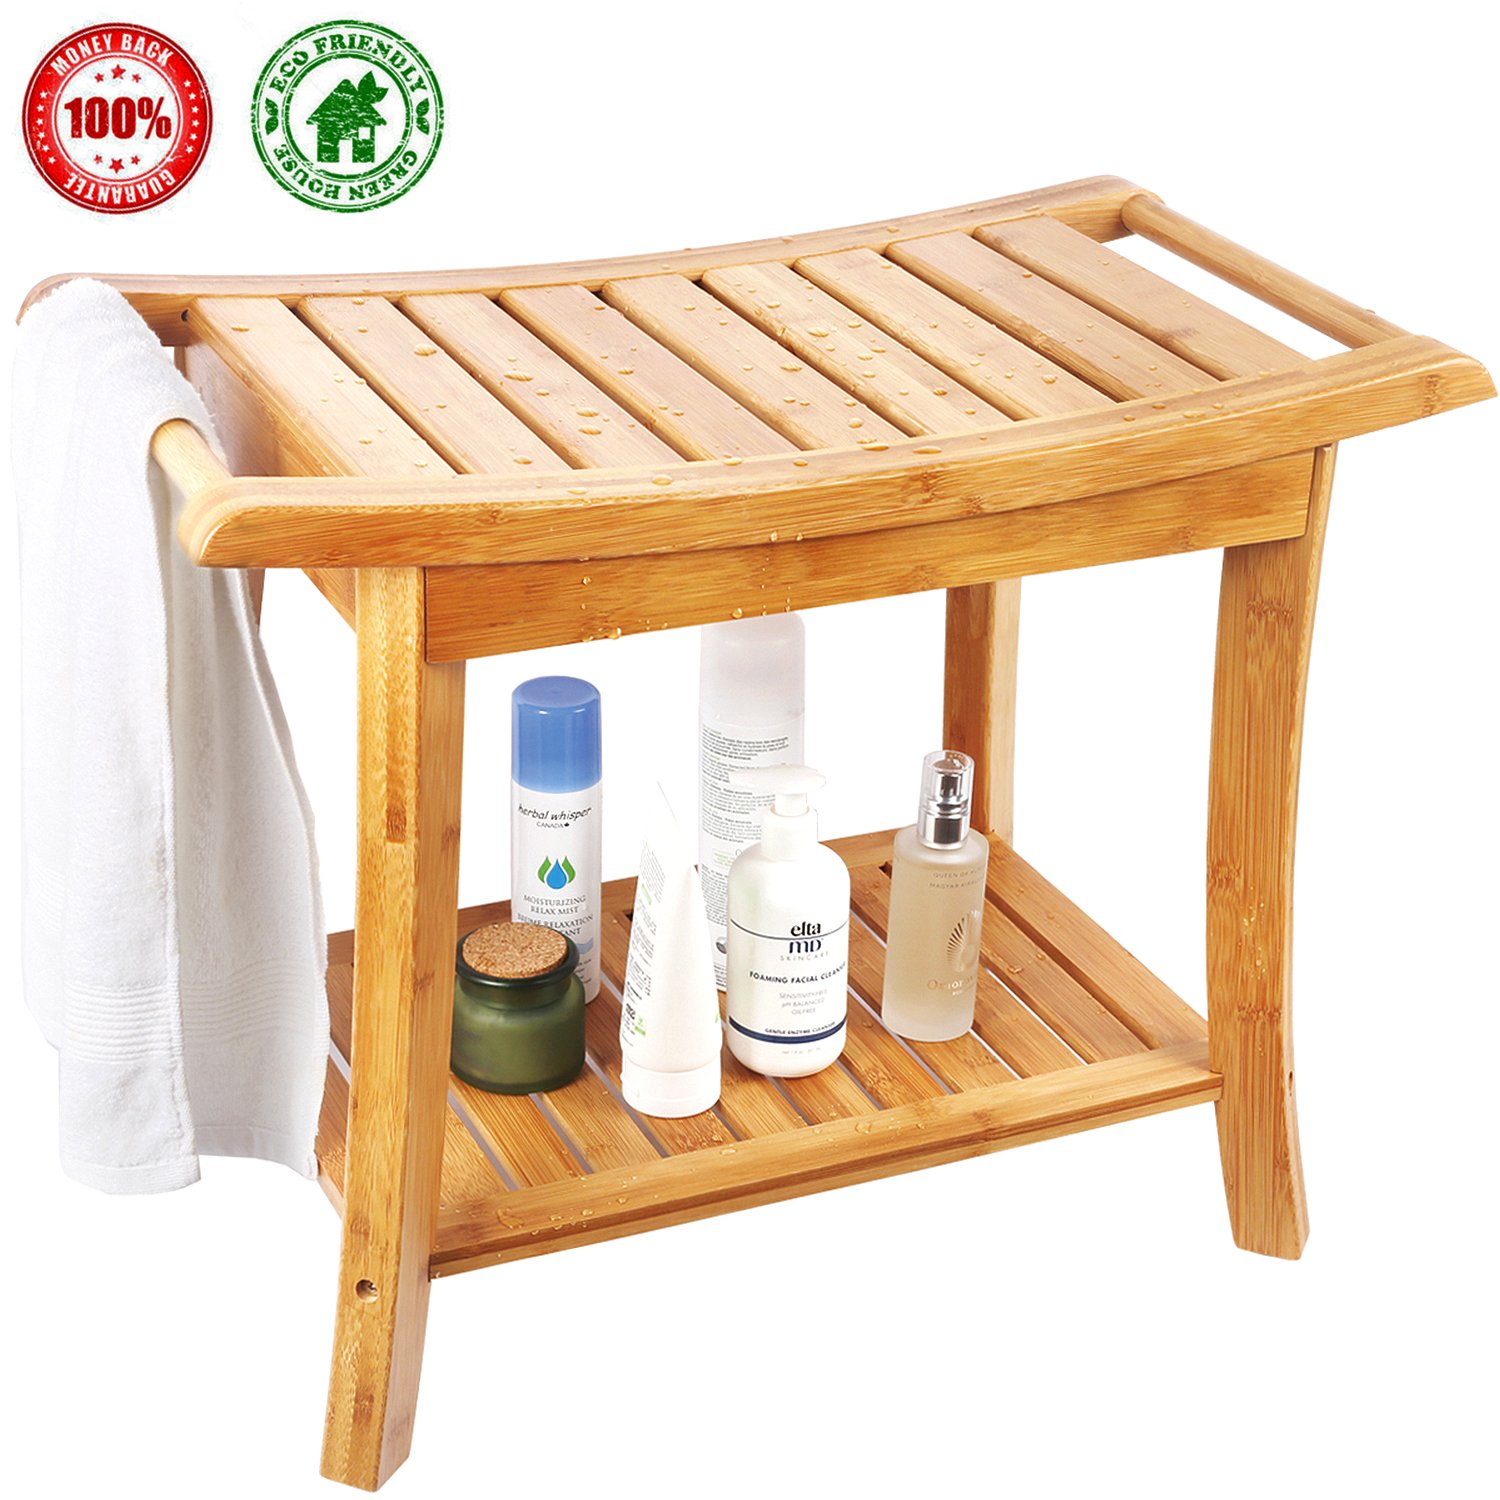 Teak Shower Bench Corner Stool Bath Spa Wood Bathroom Seat Outdoor ...